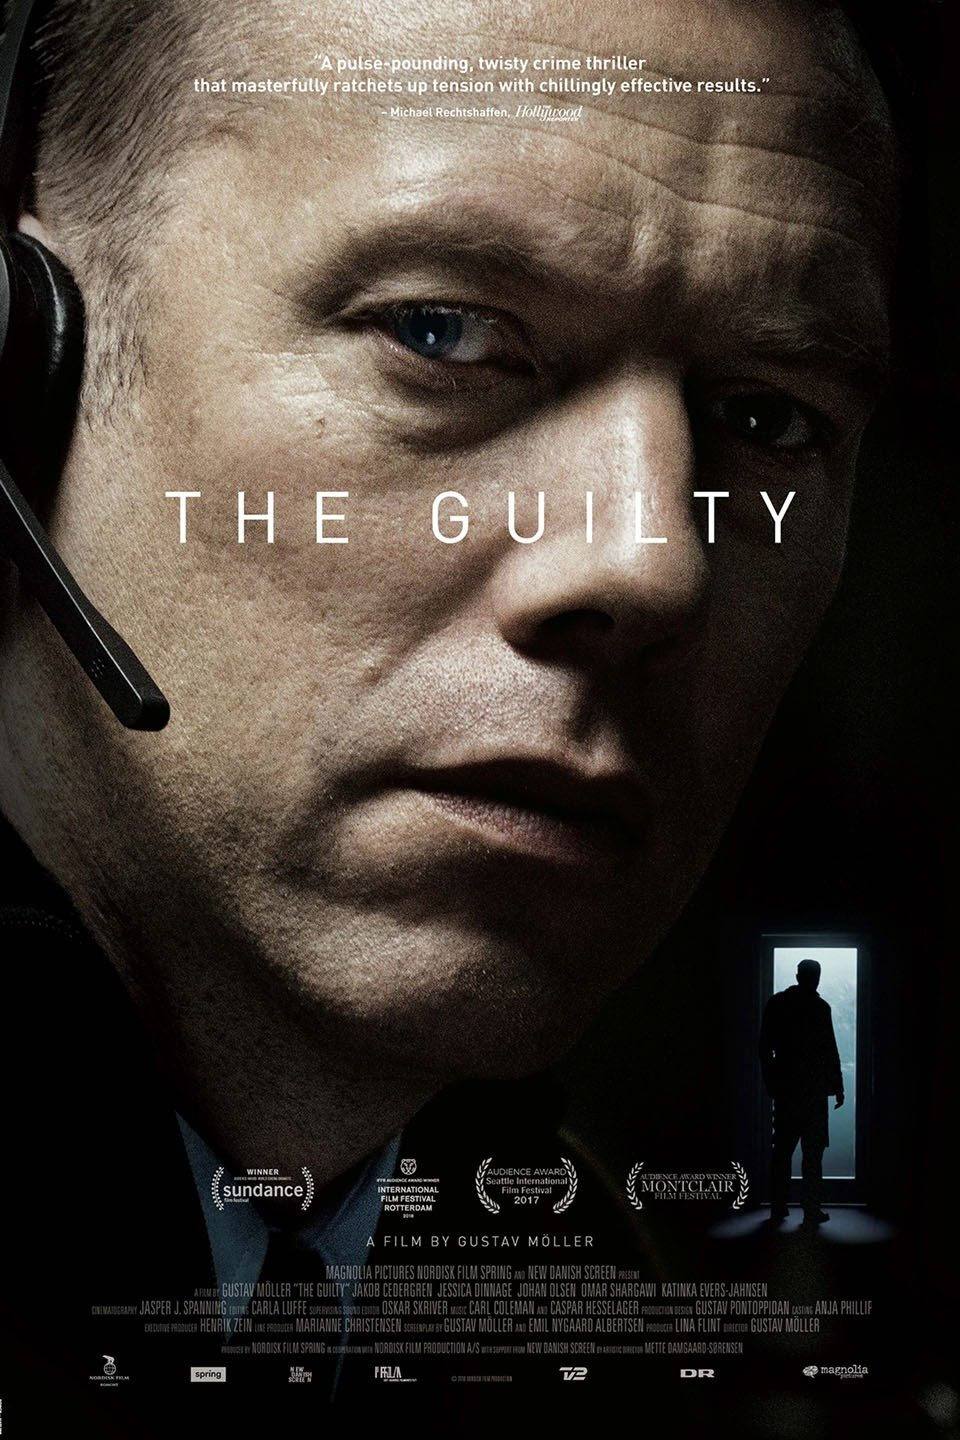 The Guilty (2018) - Directed by: Gustav MollerStarring: Jakob Cerdergren, Jessica Dinnage, Johan Olsen, Katinka Evers-JahnsenRated: R for LanguageRunning Time: 1 h 25 mTMM Score: 4.5 stars out of 5STRENGTHS: Writing, Directing, World Building, PacingWEAKNESSES: A Bit Heavy Handed Near the Climax